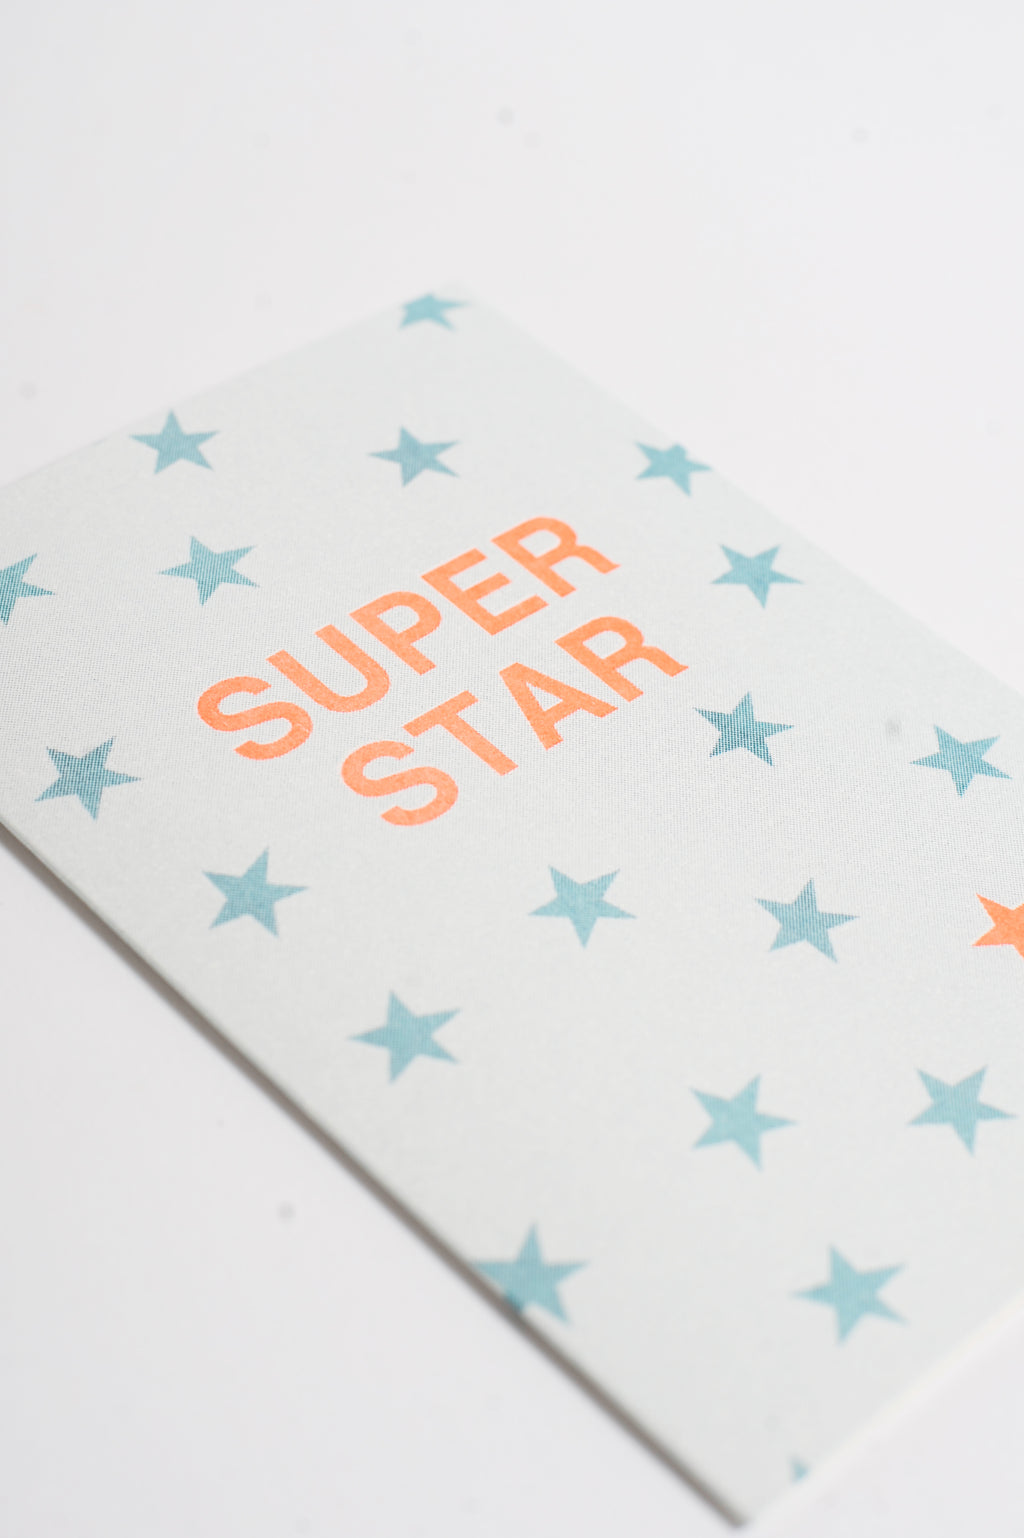 Superstar Teal Riso Card